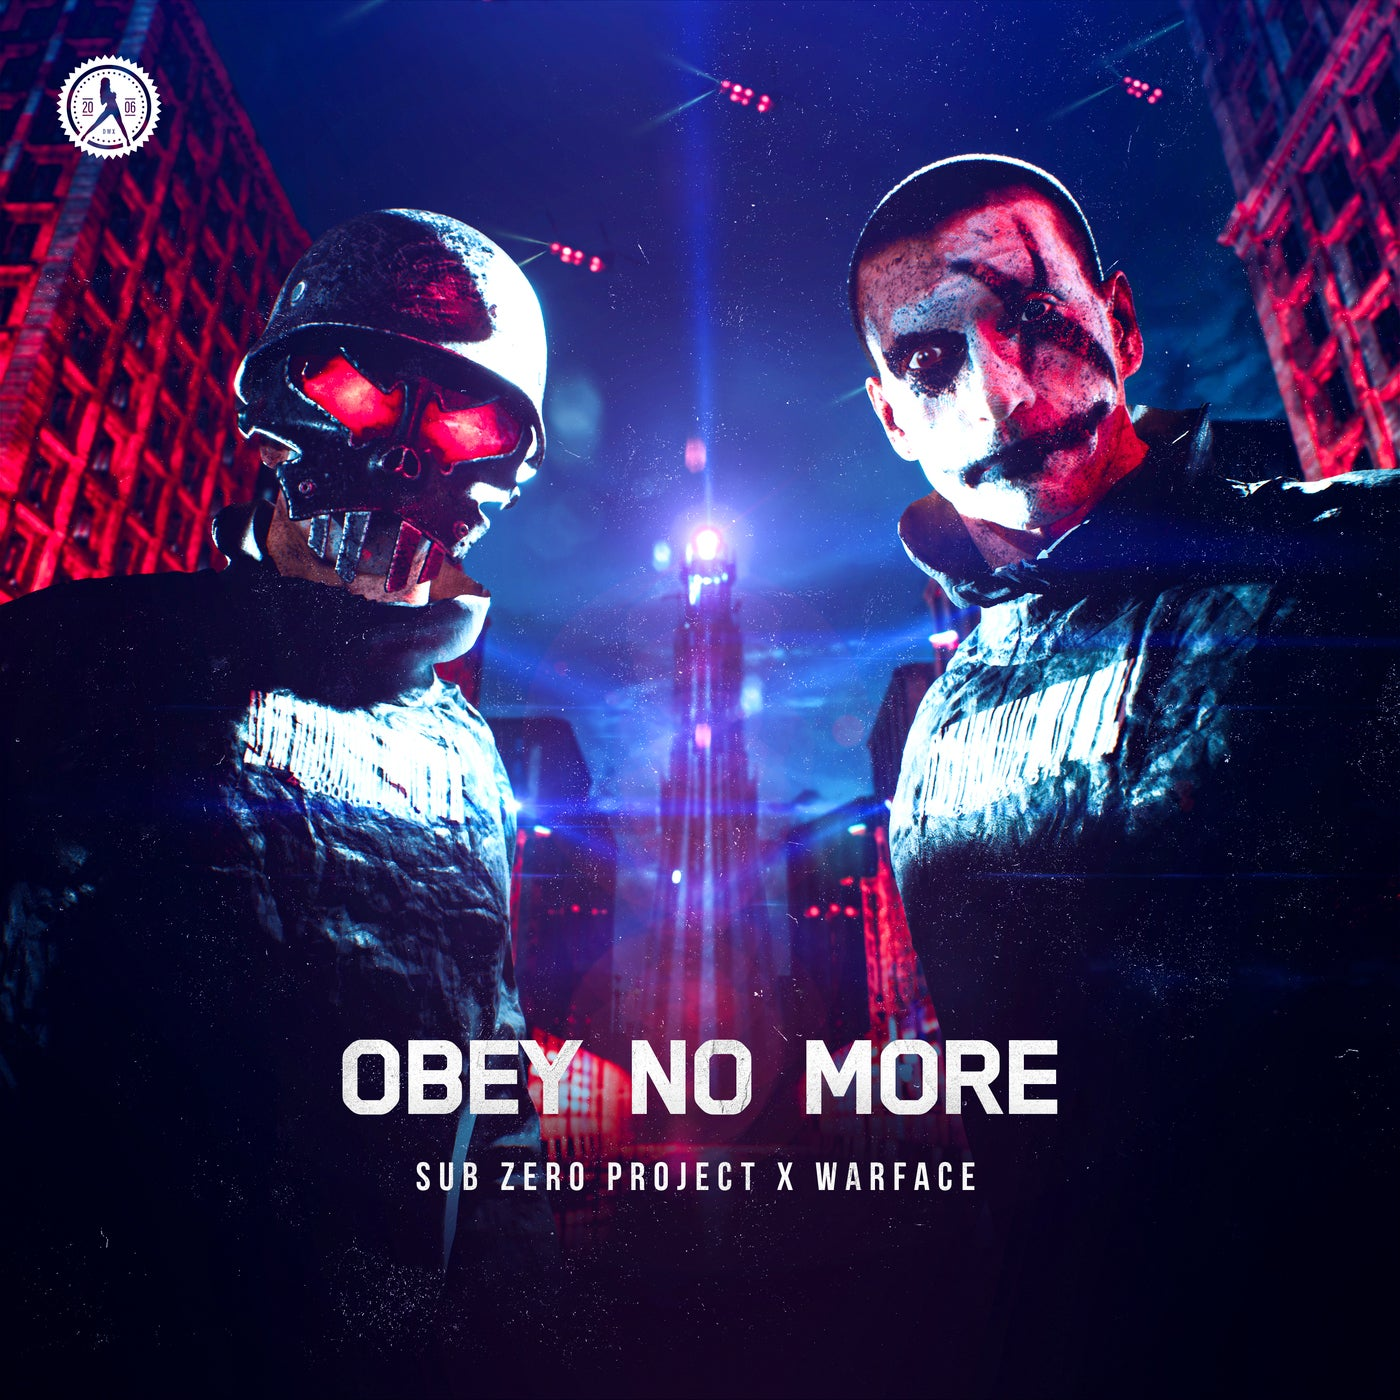 Obey No More